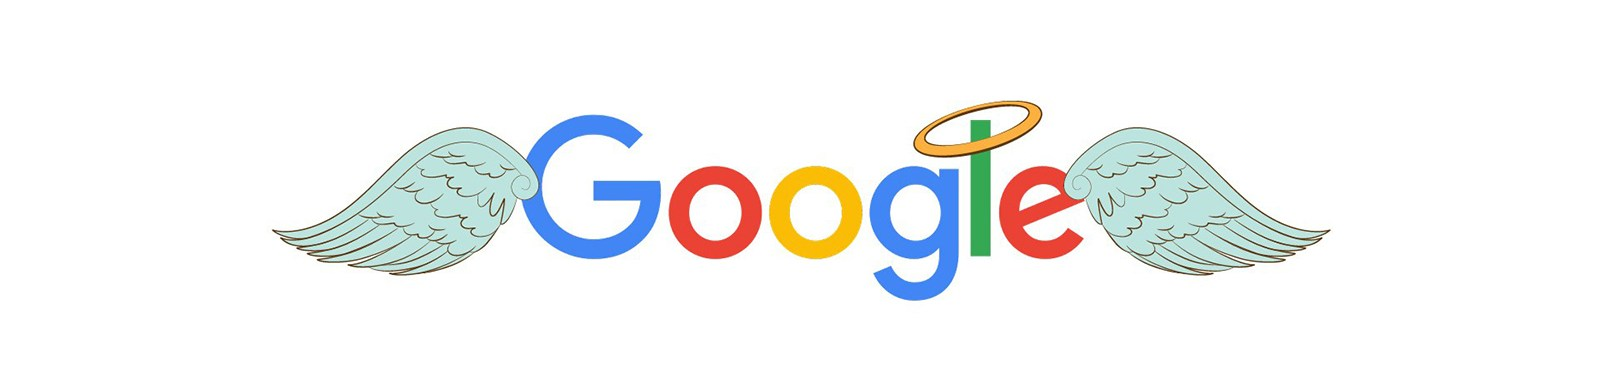 google-angel-eye